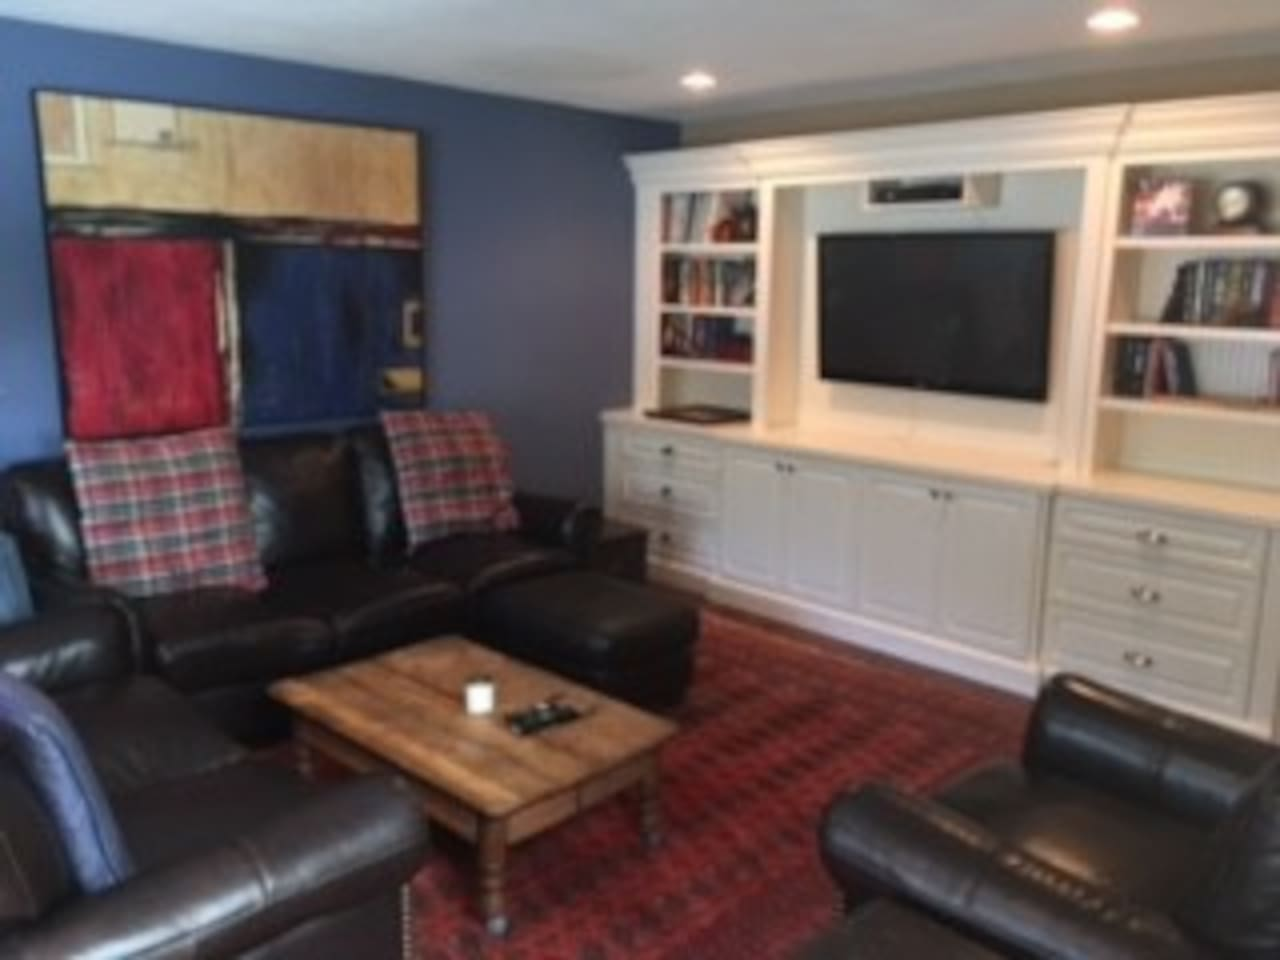 Living room - big screen TV - seating for all